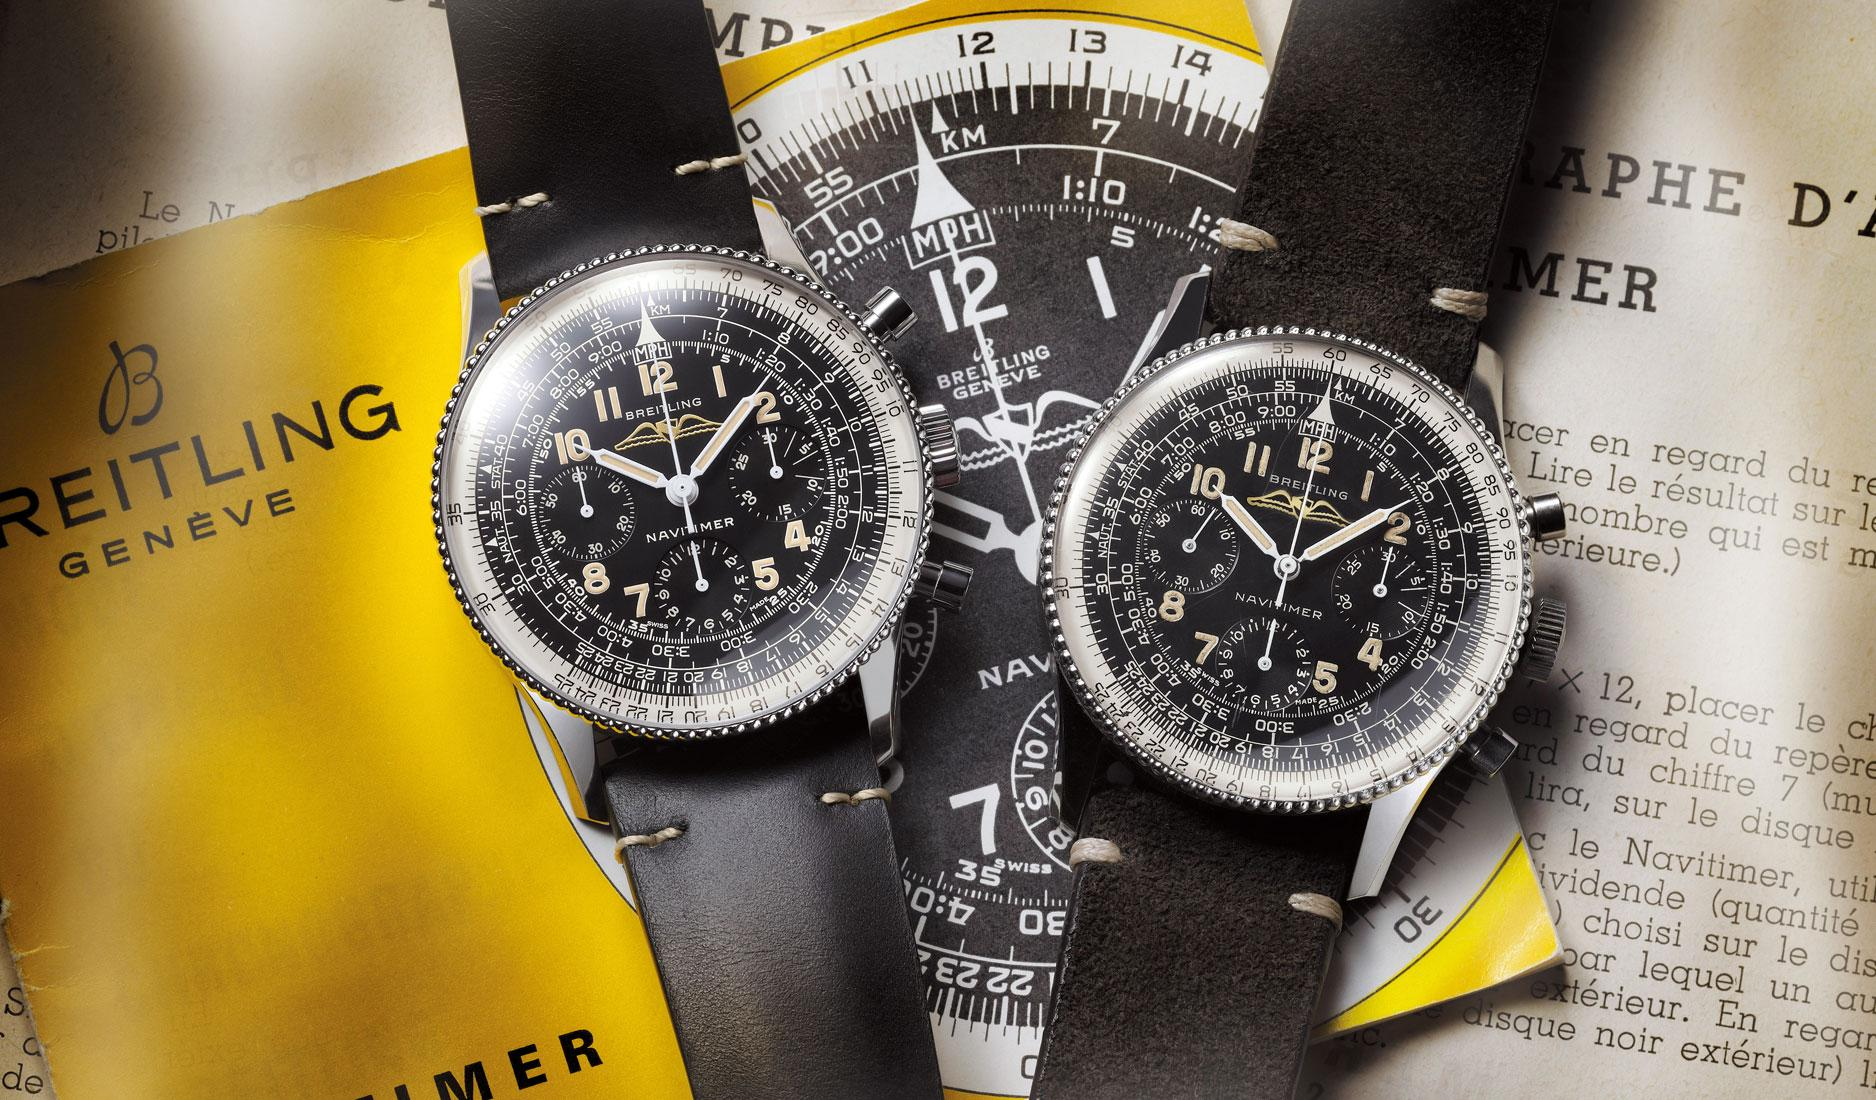 Navitimer Ref. 806 1959 Re-edition (left) and the original